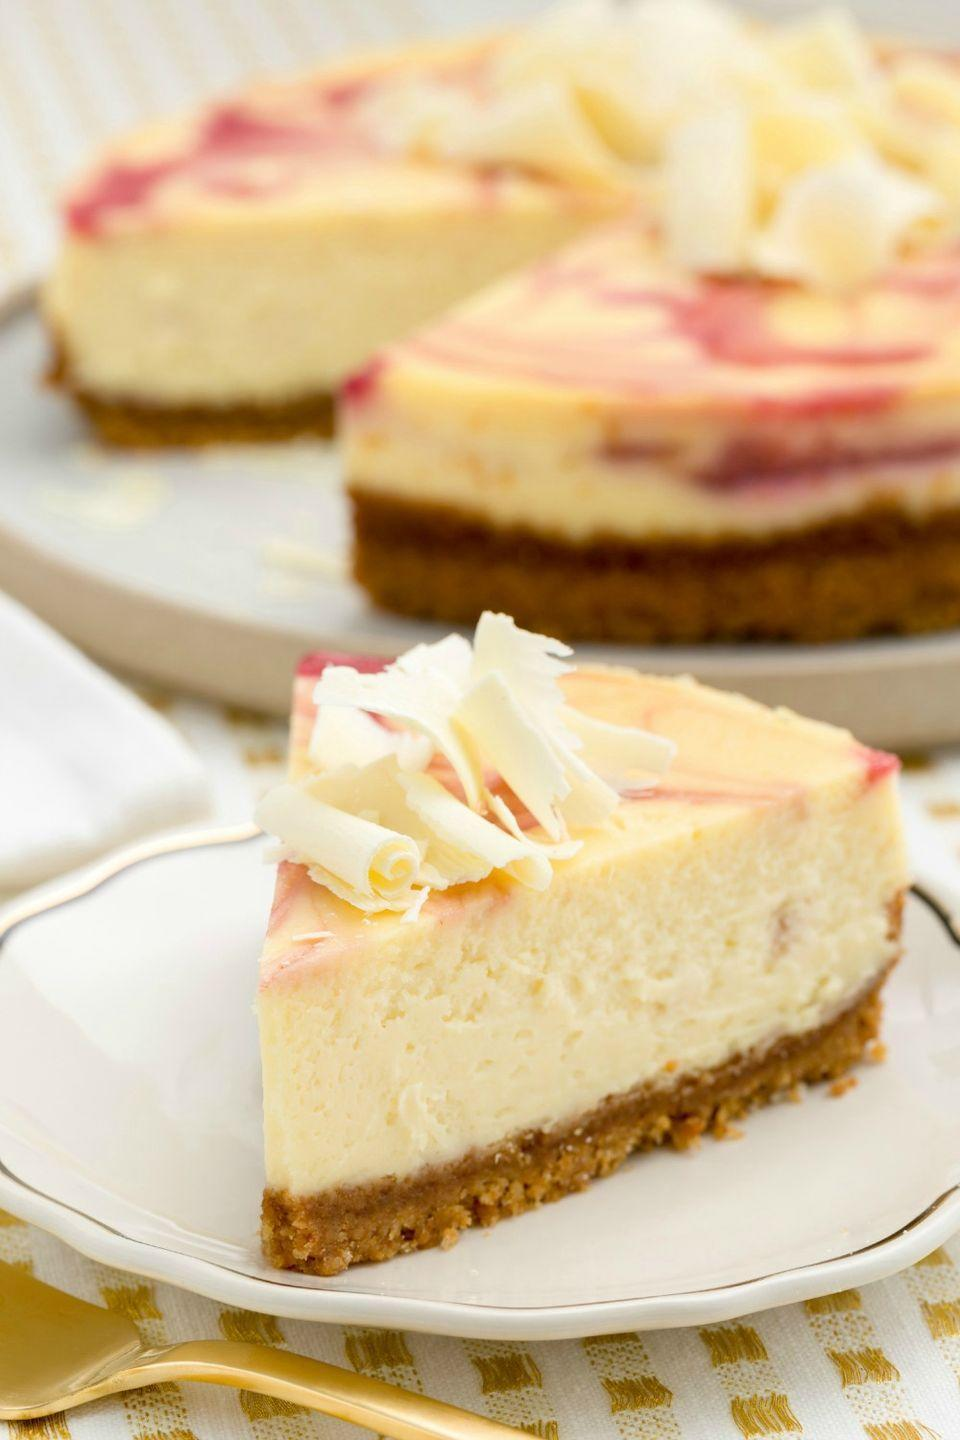 """<p>With a decadent raspberry swirl, this cheesecake looks as decadent as it tastes.</p><p>Get the recipe from <a href=""""/cooking/recipe-ideas/recipes/a45124/white-chocolate-cheesecake-raspberry-swirl-recipe/"""" data-ylk=""""slk:Delish"""" class=""""link rapid-noclick-resp"""">Delish</a>.</p>"""